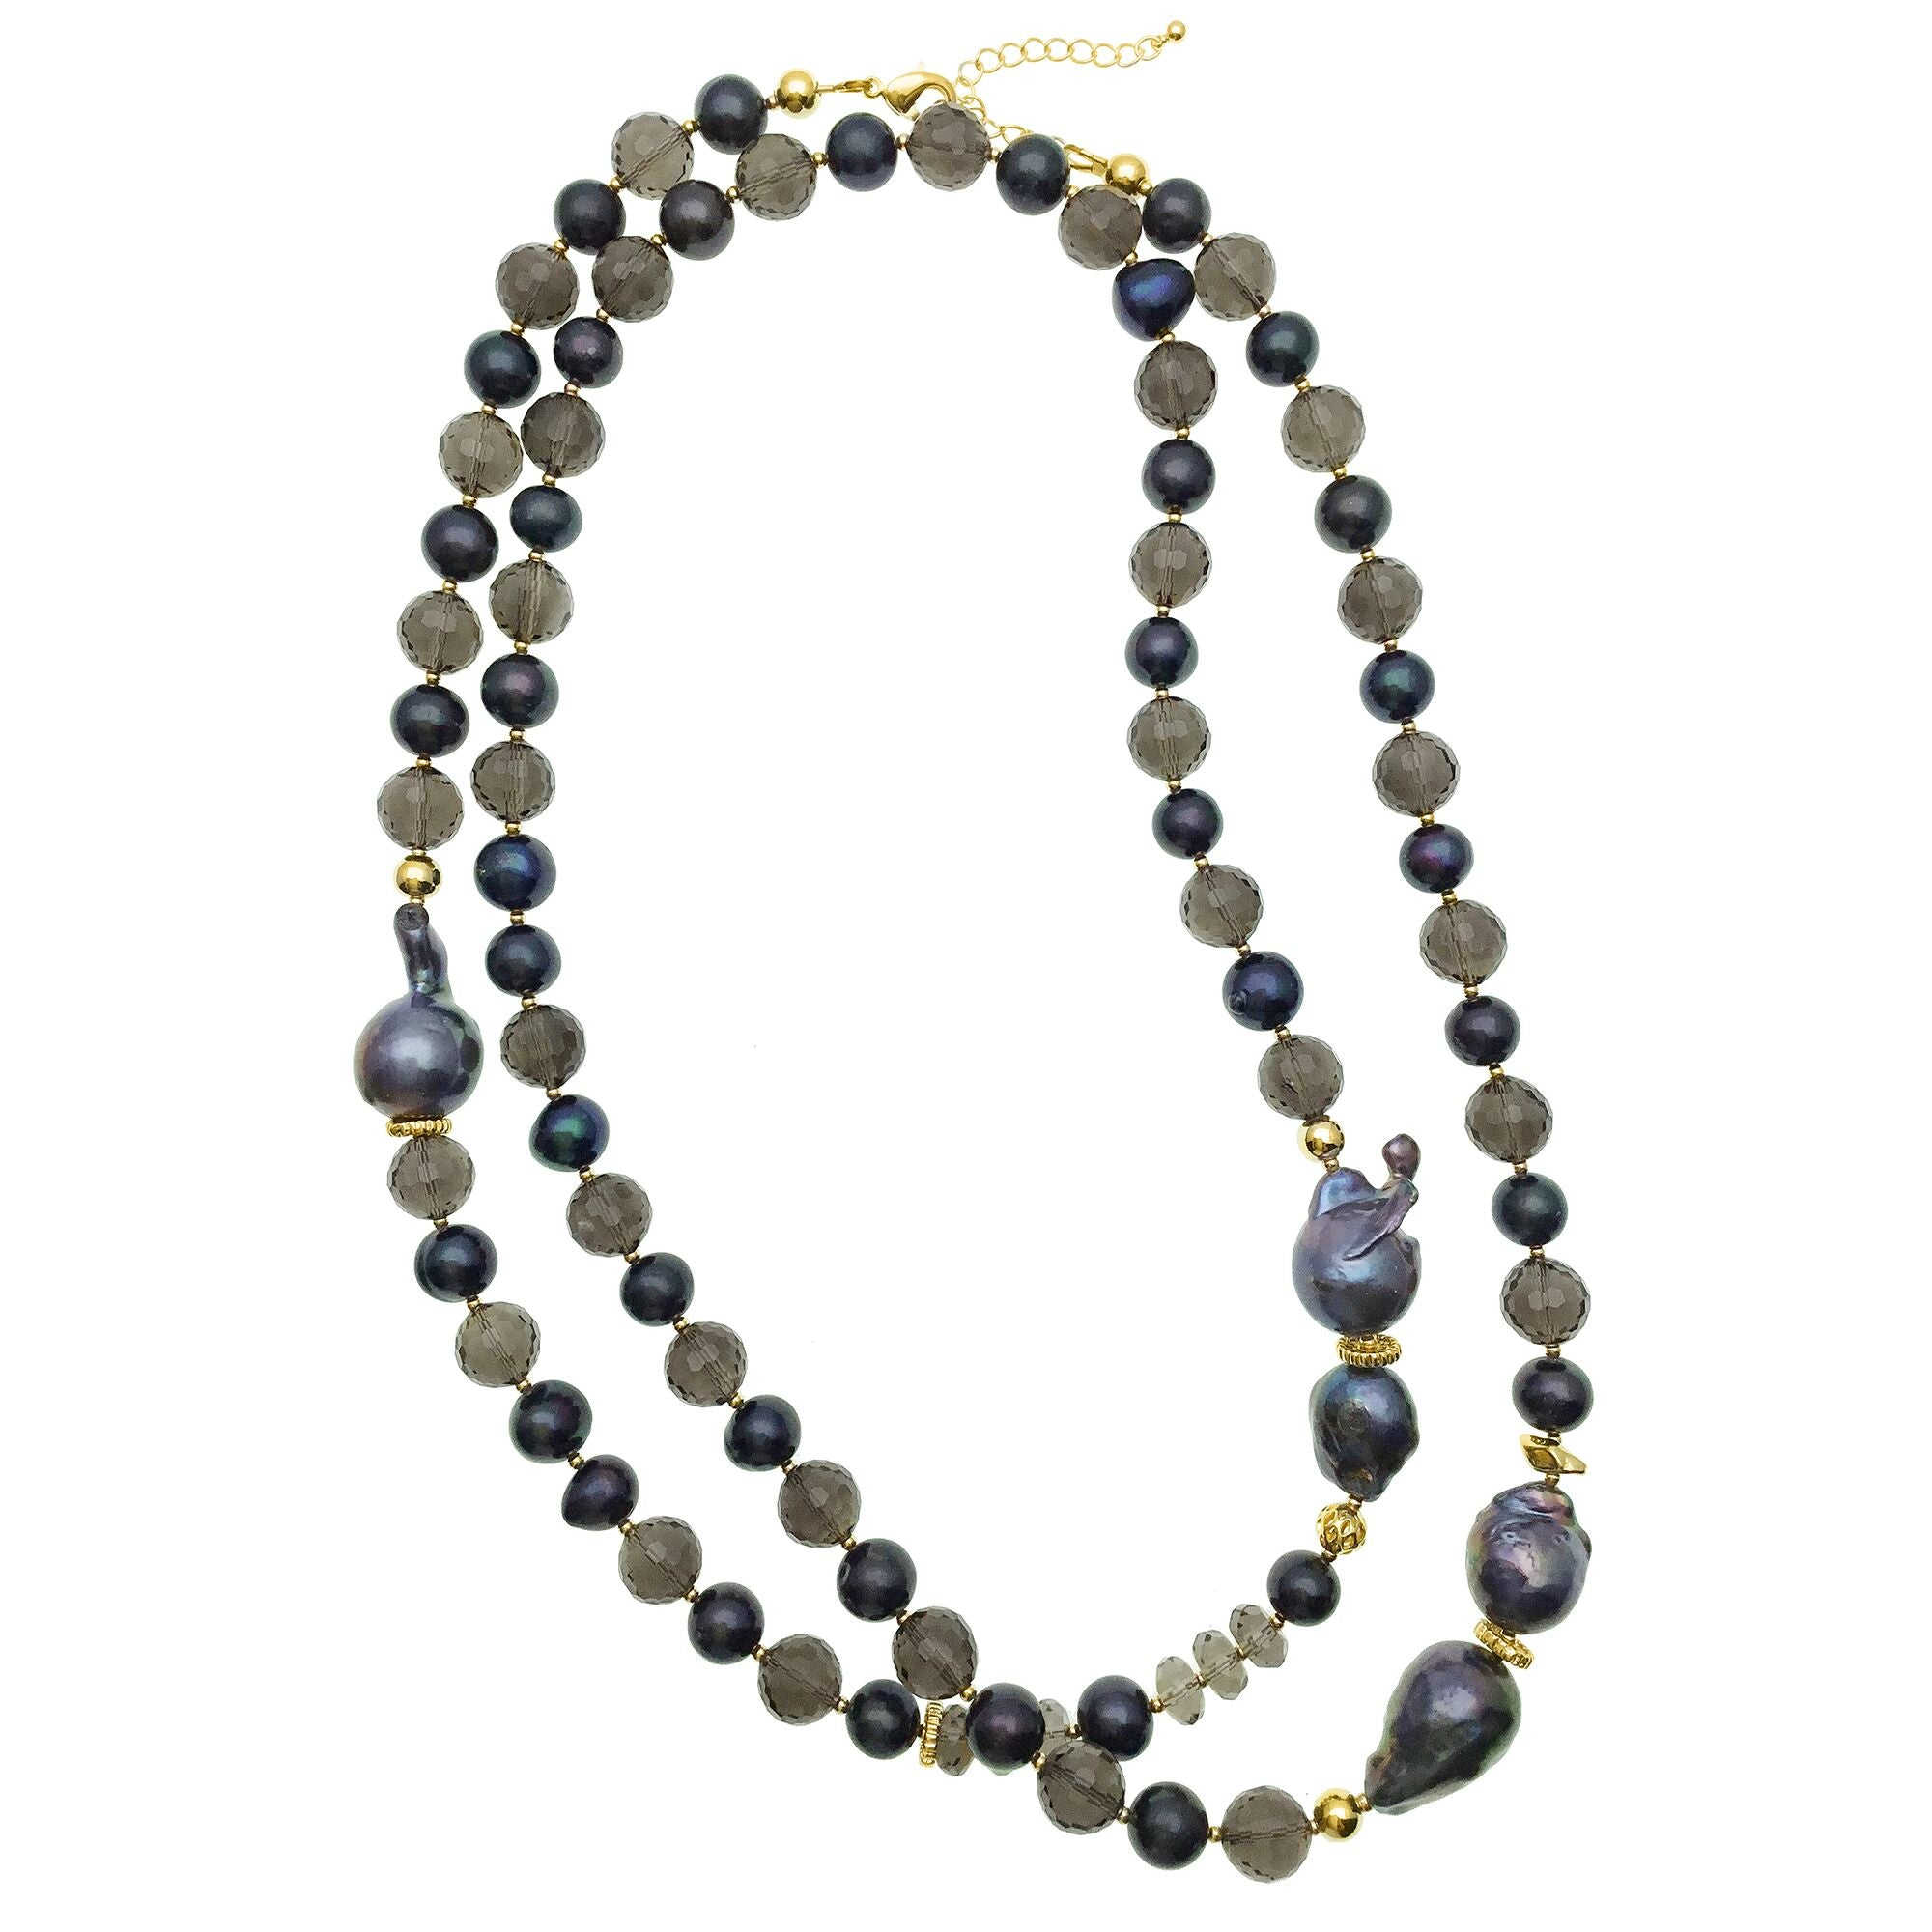 Long Blue Baroque Pearl and Smoky Quartz Necklace - Shopidpearl